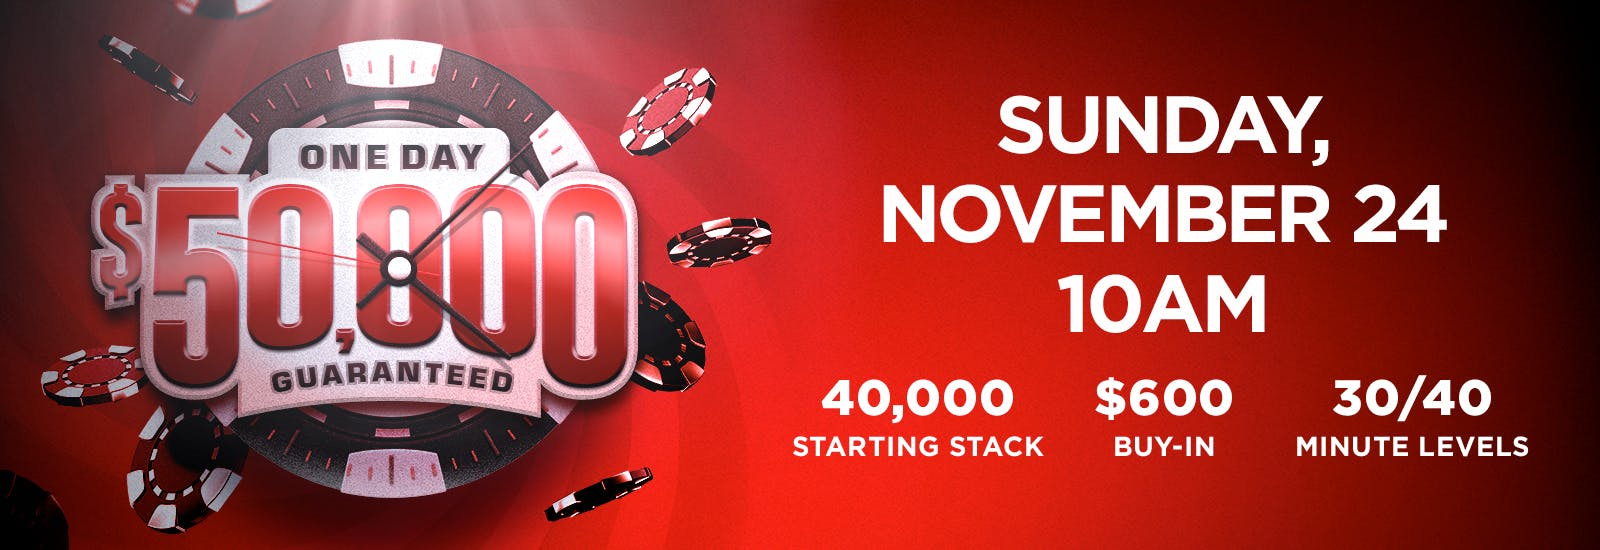 One Day $50,000 Guaranteed Tournament